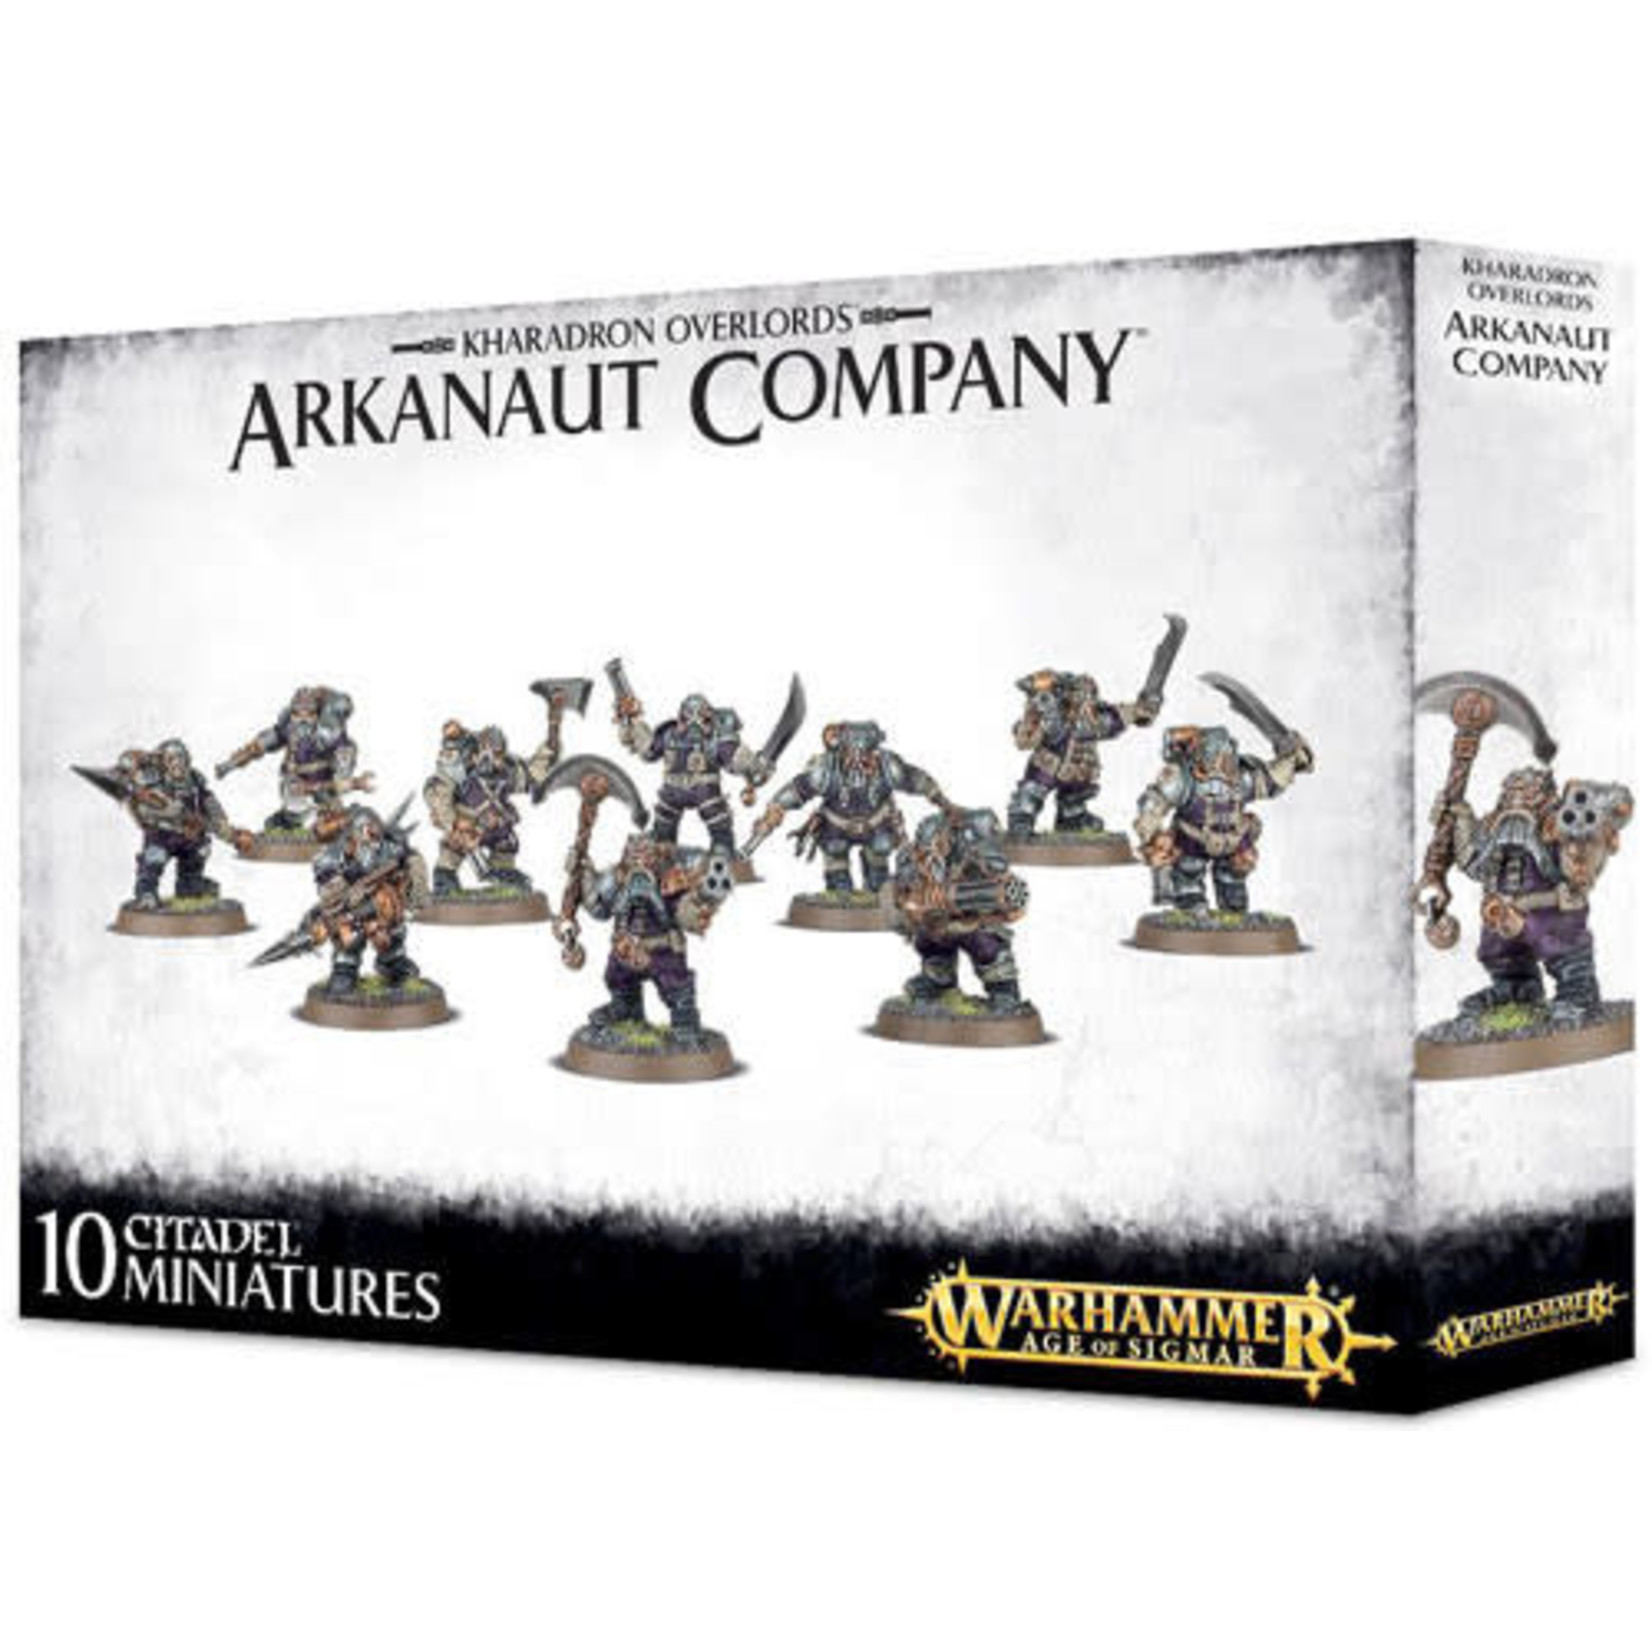 Games Workshop Warhammer Age of Sigmar: Kharadron Overlords: Arkanaut Company